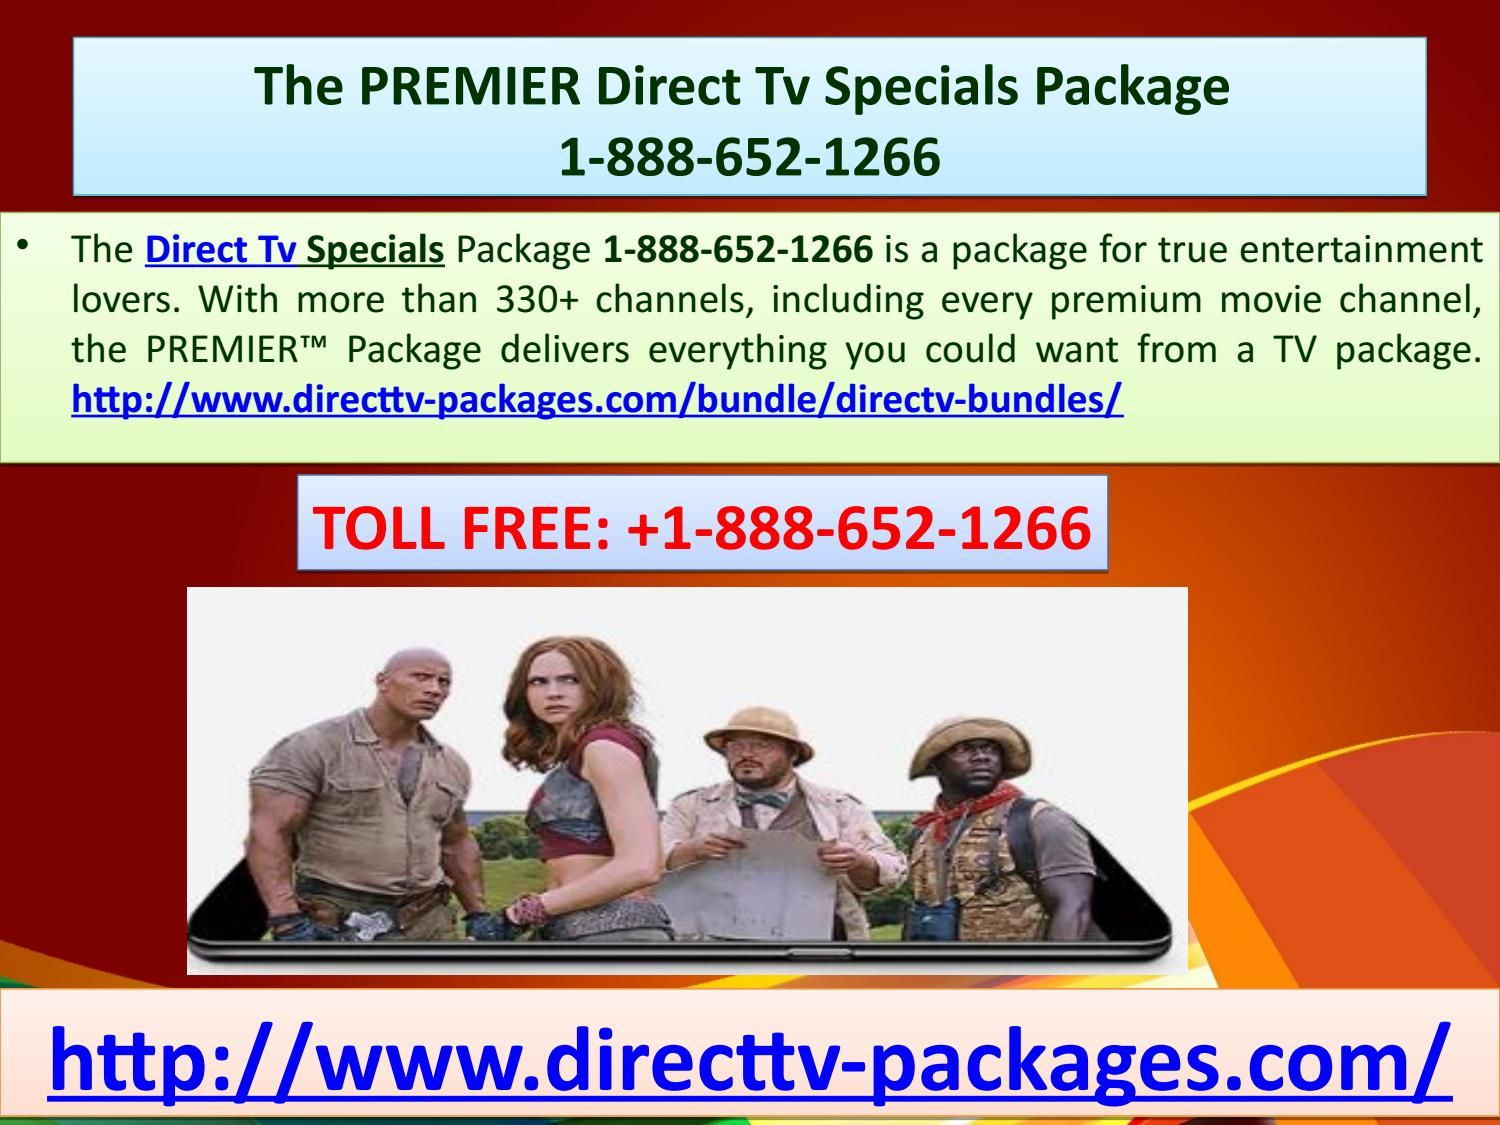 The PREMIER Direct Tv Specials Package 18886521266